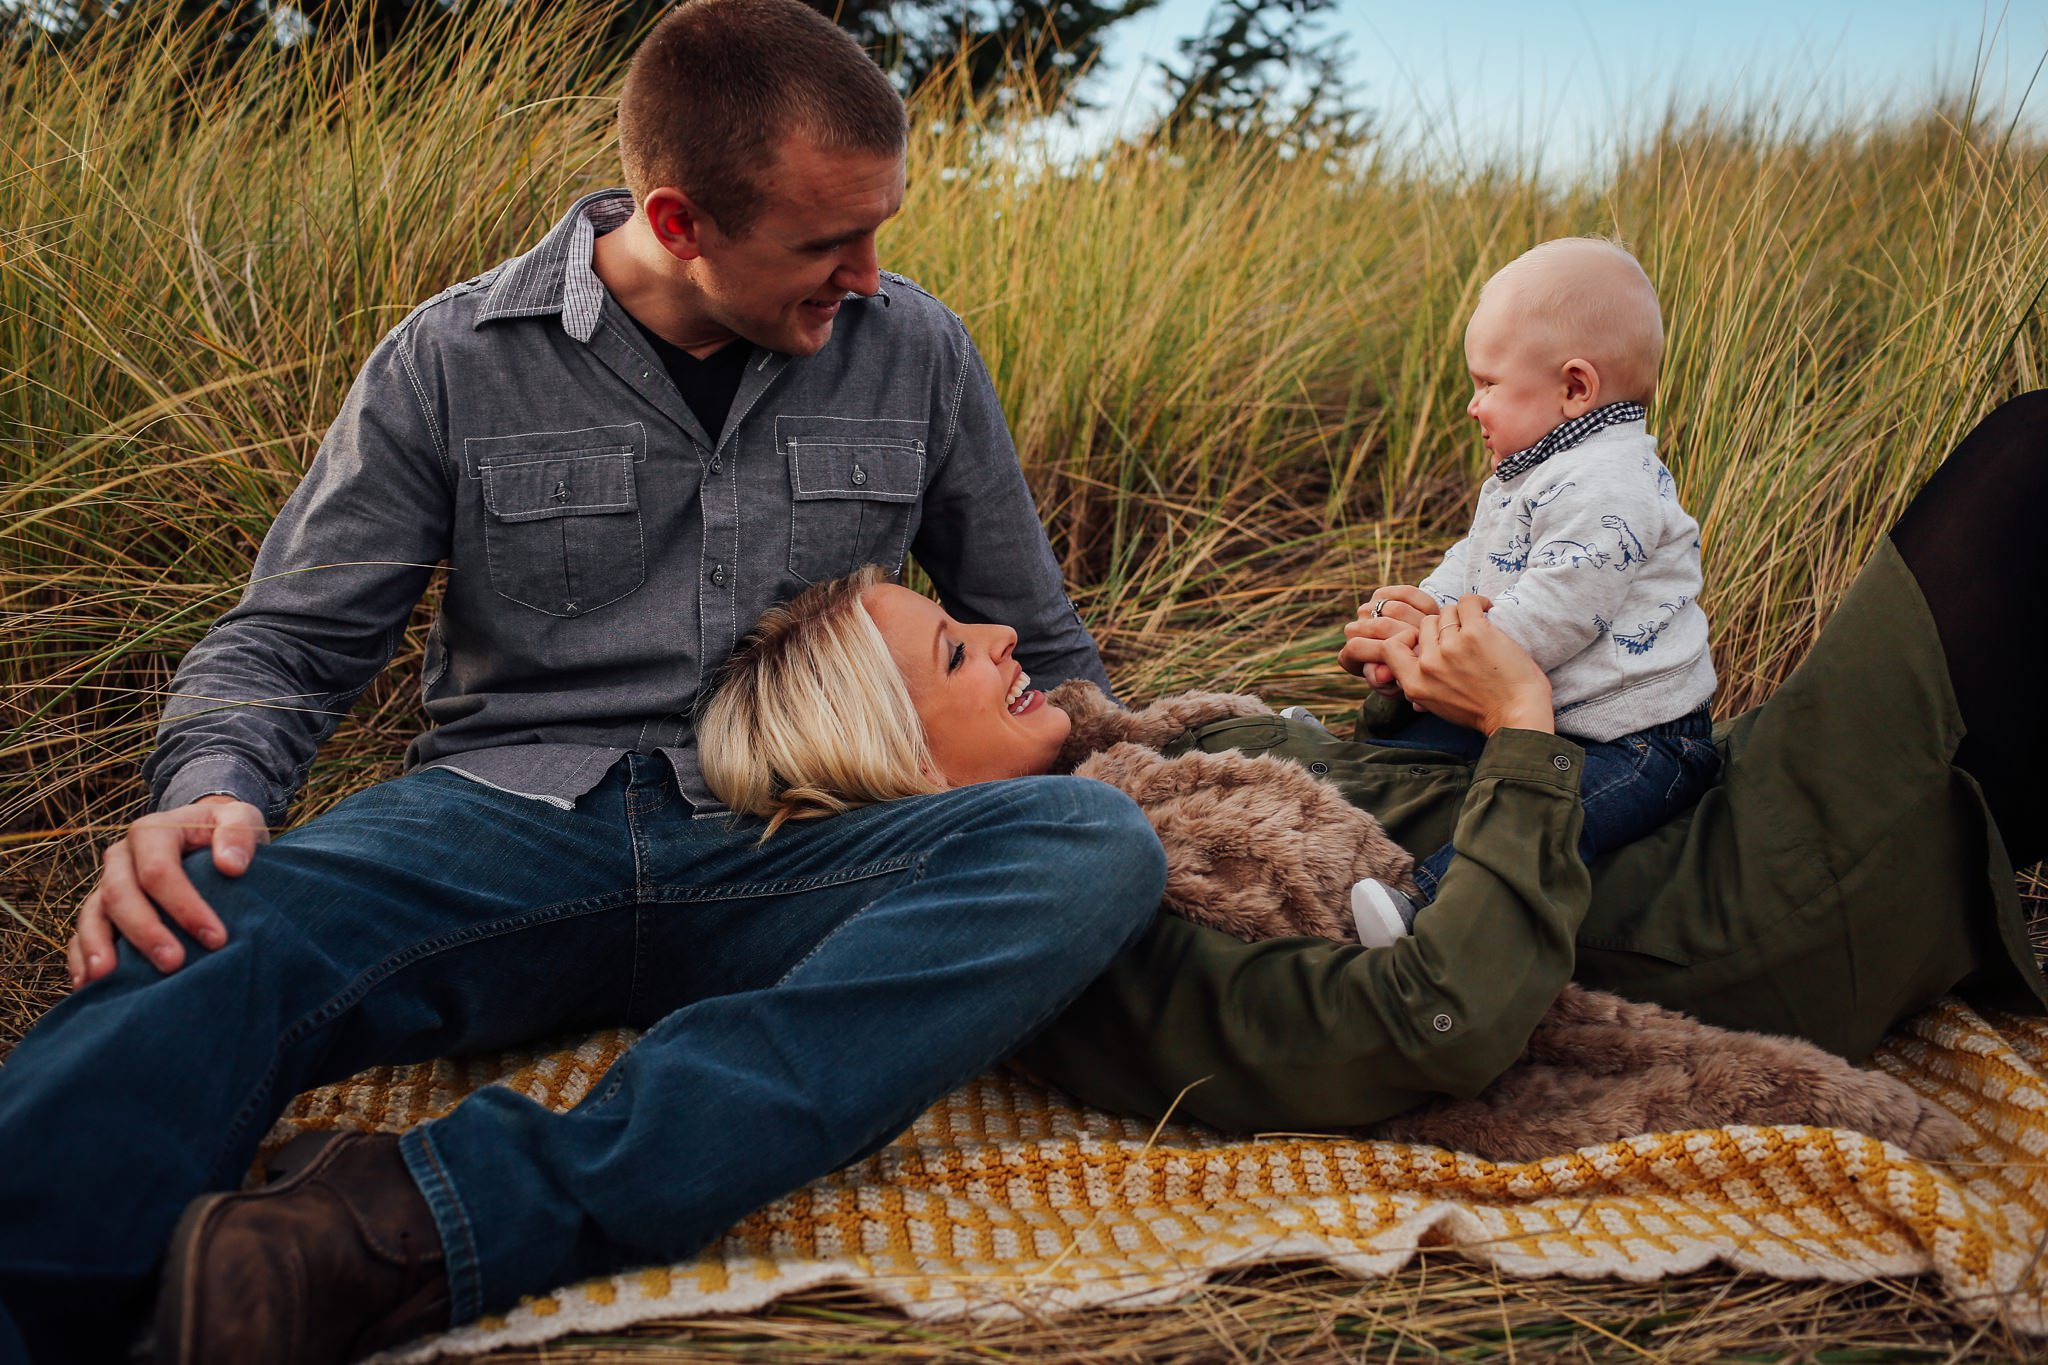 Whidbey-Island-Family-Photographer-Kara-Chappell-Photography_1353.jpg